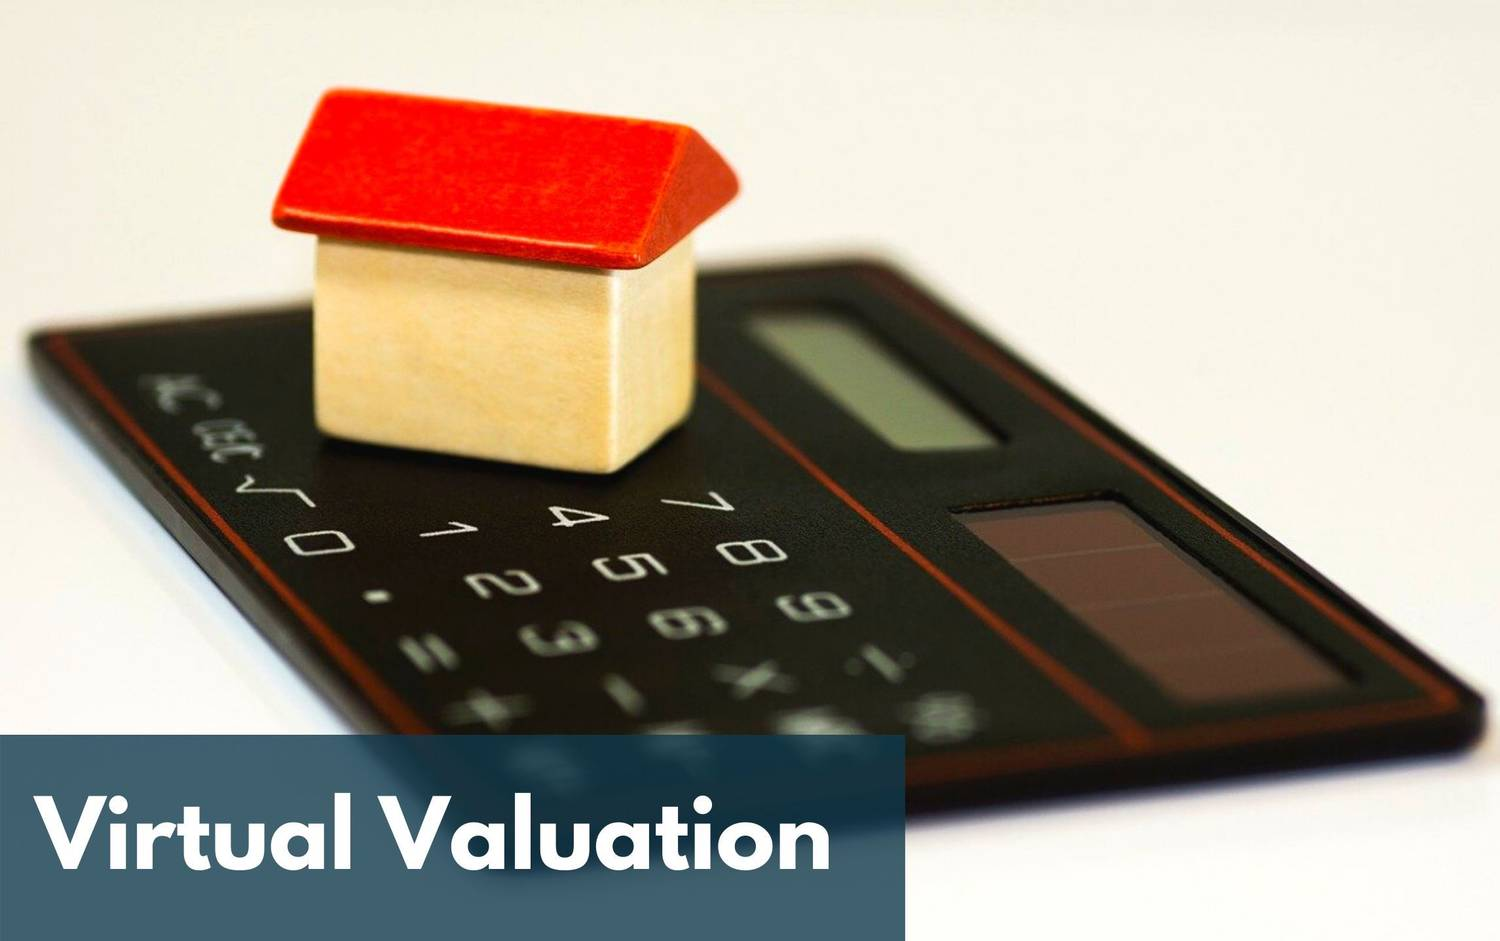 Virtual Valuation